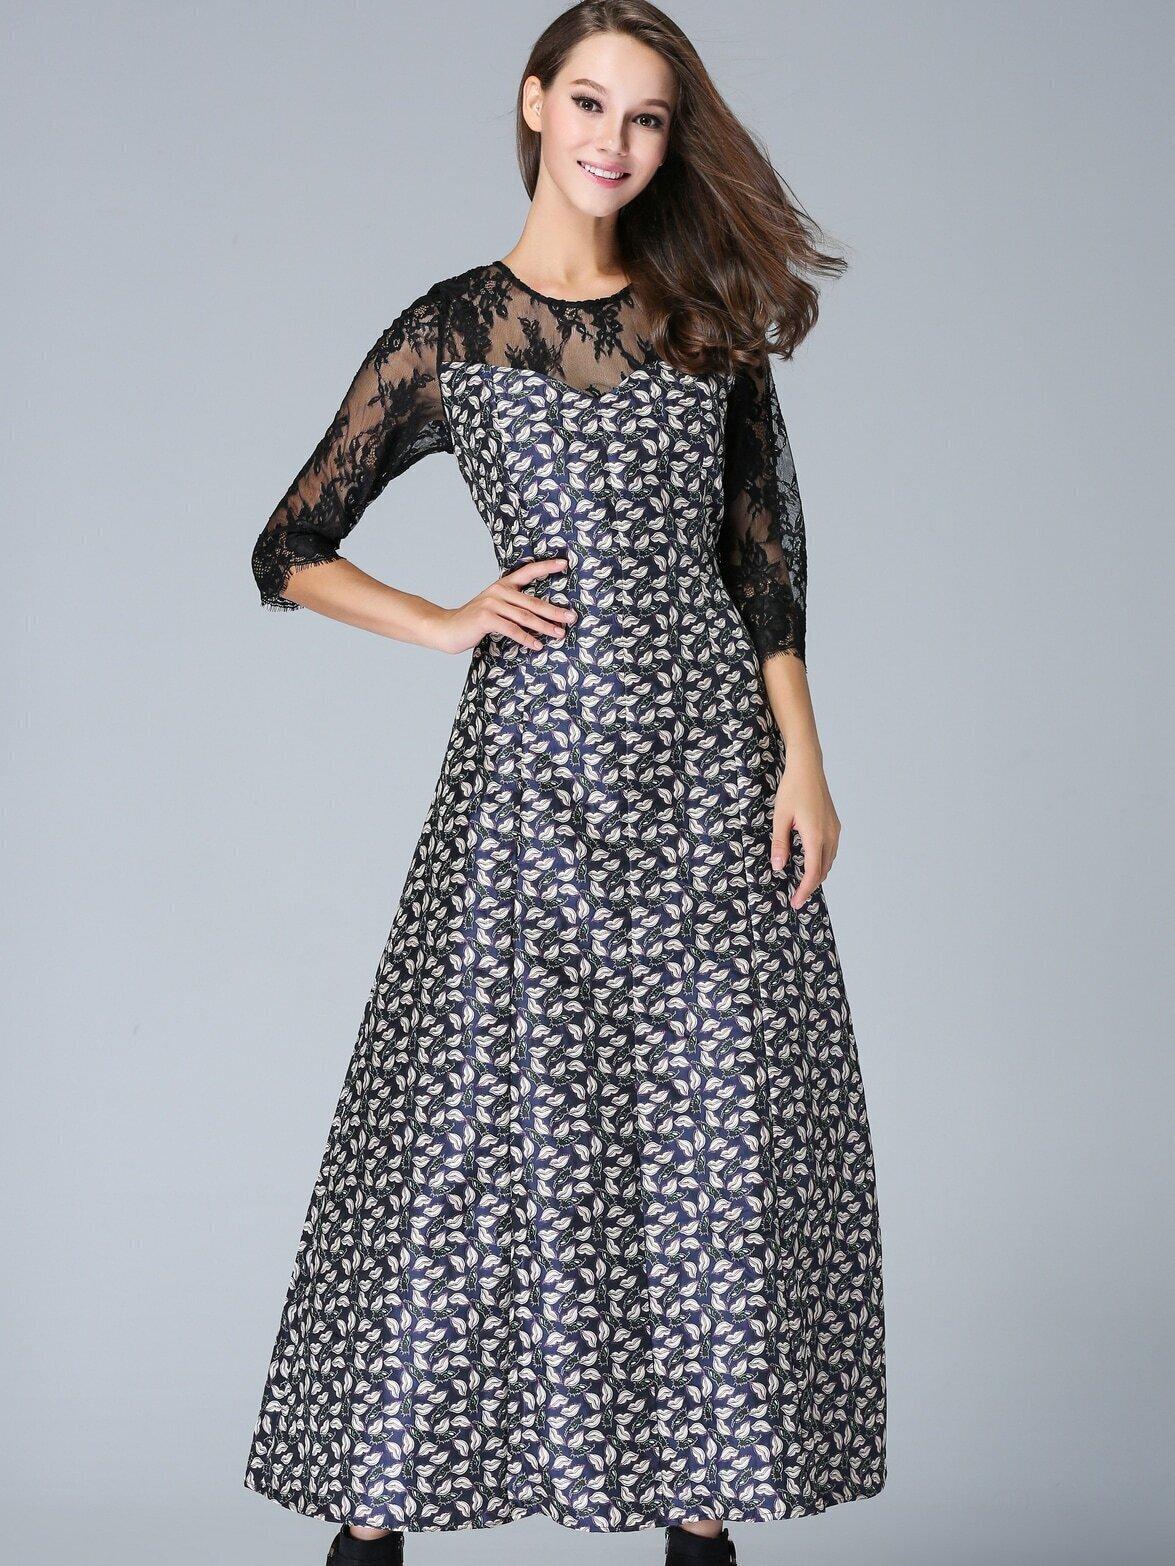 Multicolor Round Neck Half Sleeve Jacquard Contrast Lace Dress